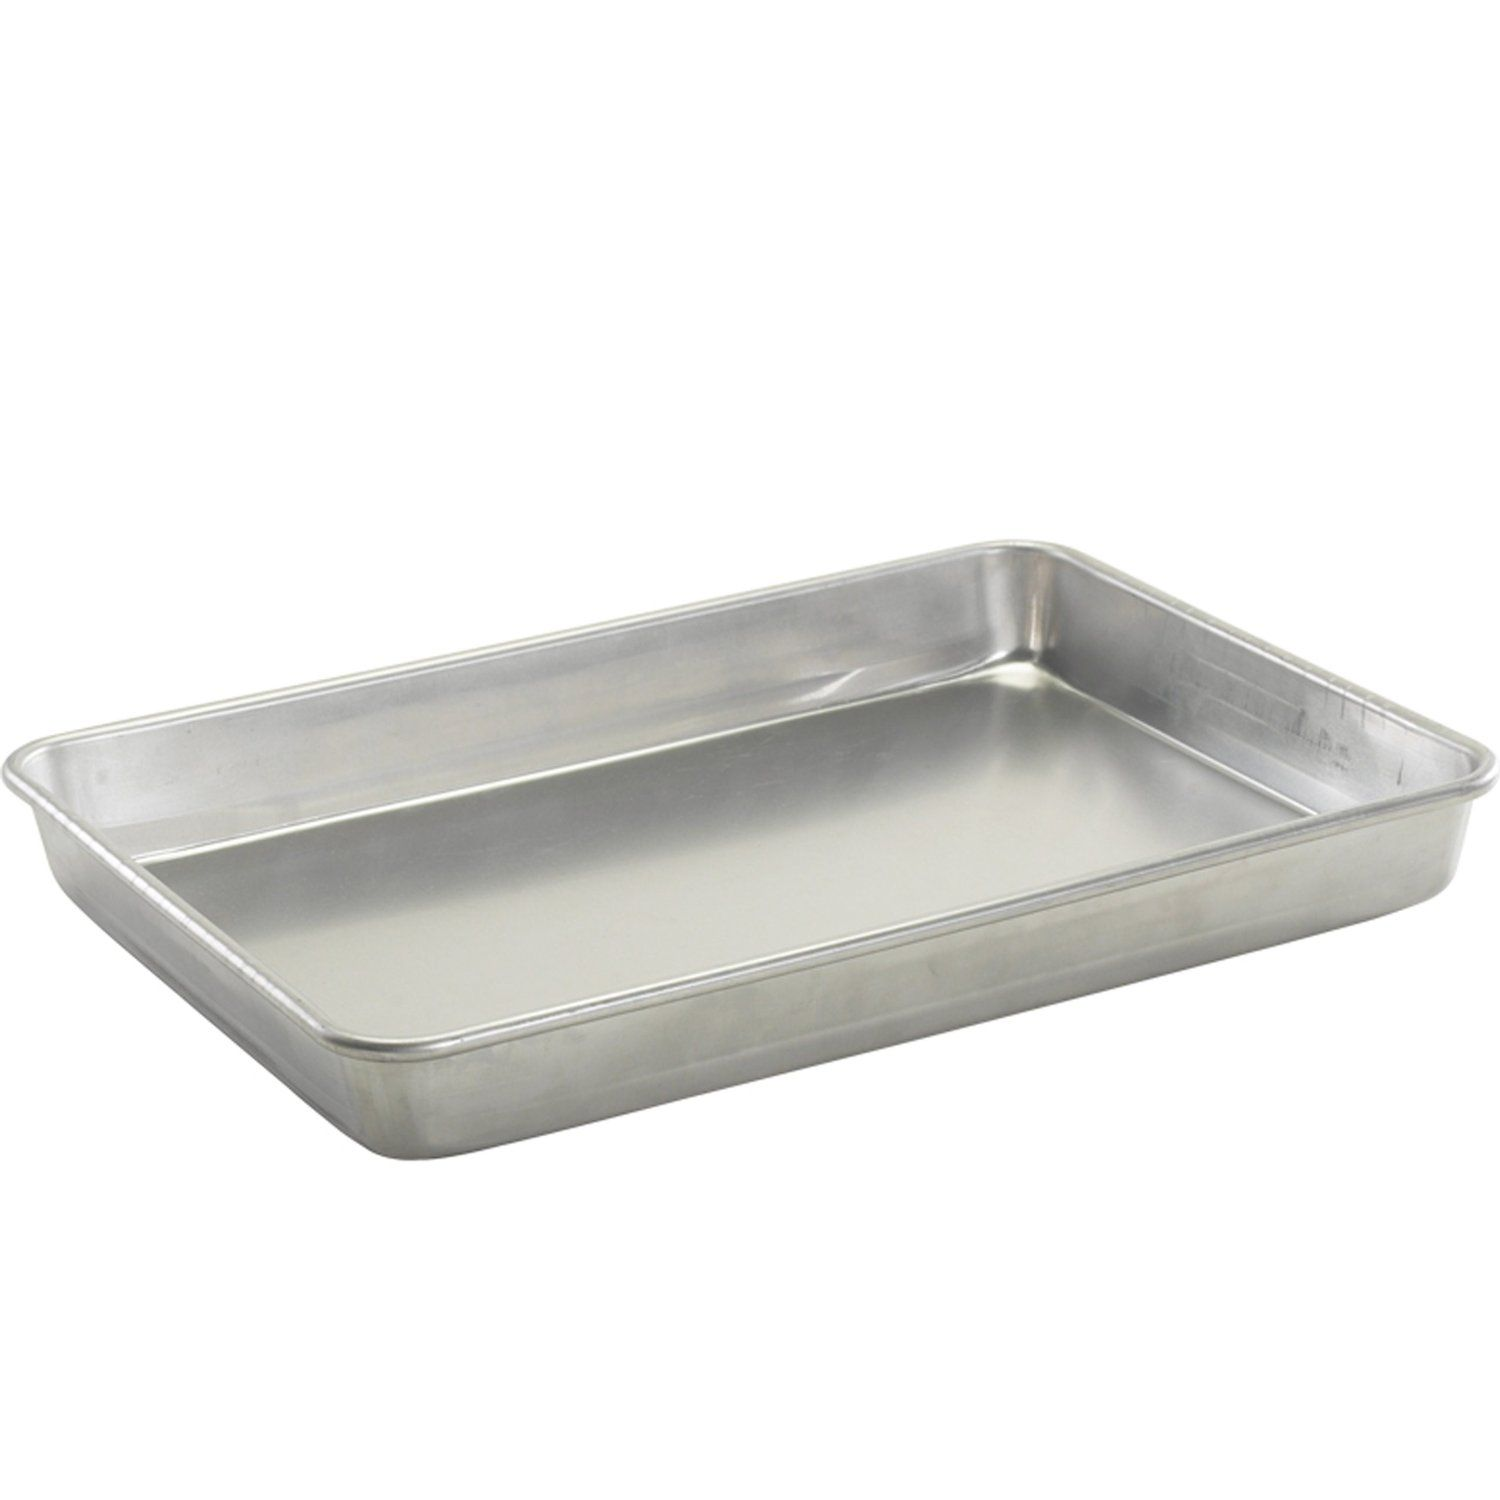 Nordic Ware Natural Aluminum Commercial Hi Side Sheet Cake Pan More Info Could Be Found At The Image Url Sheet Cake Pan Nordic Ware Cake Baking Pans